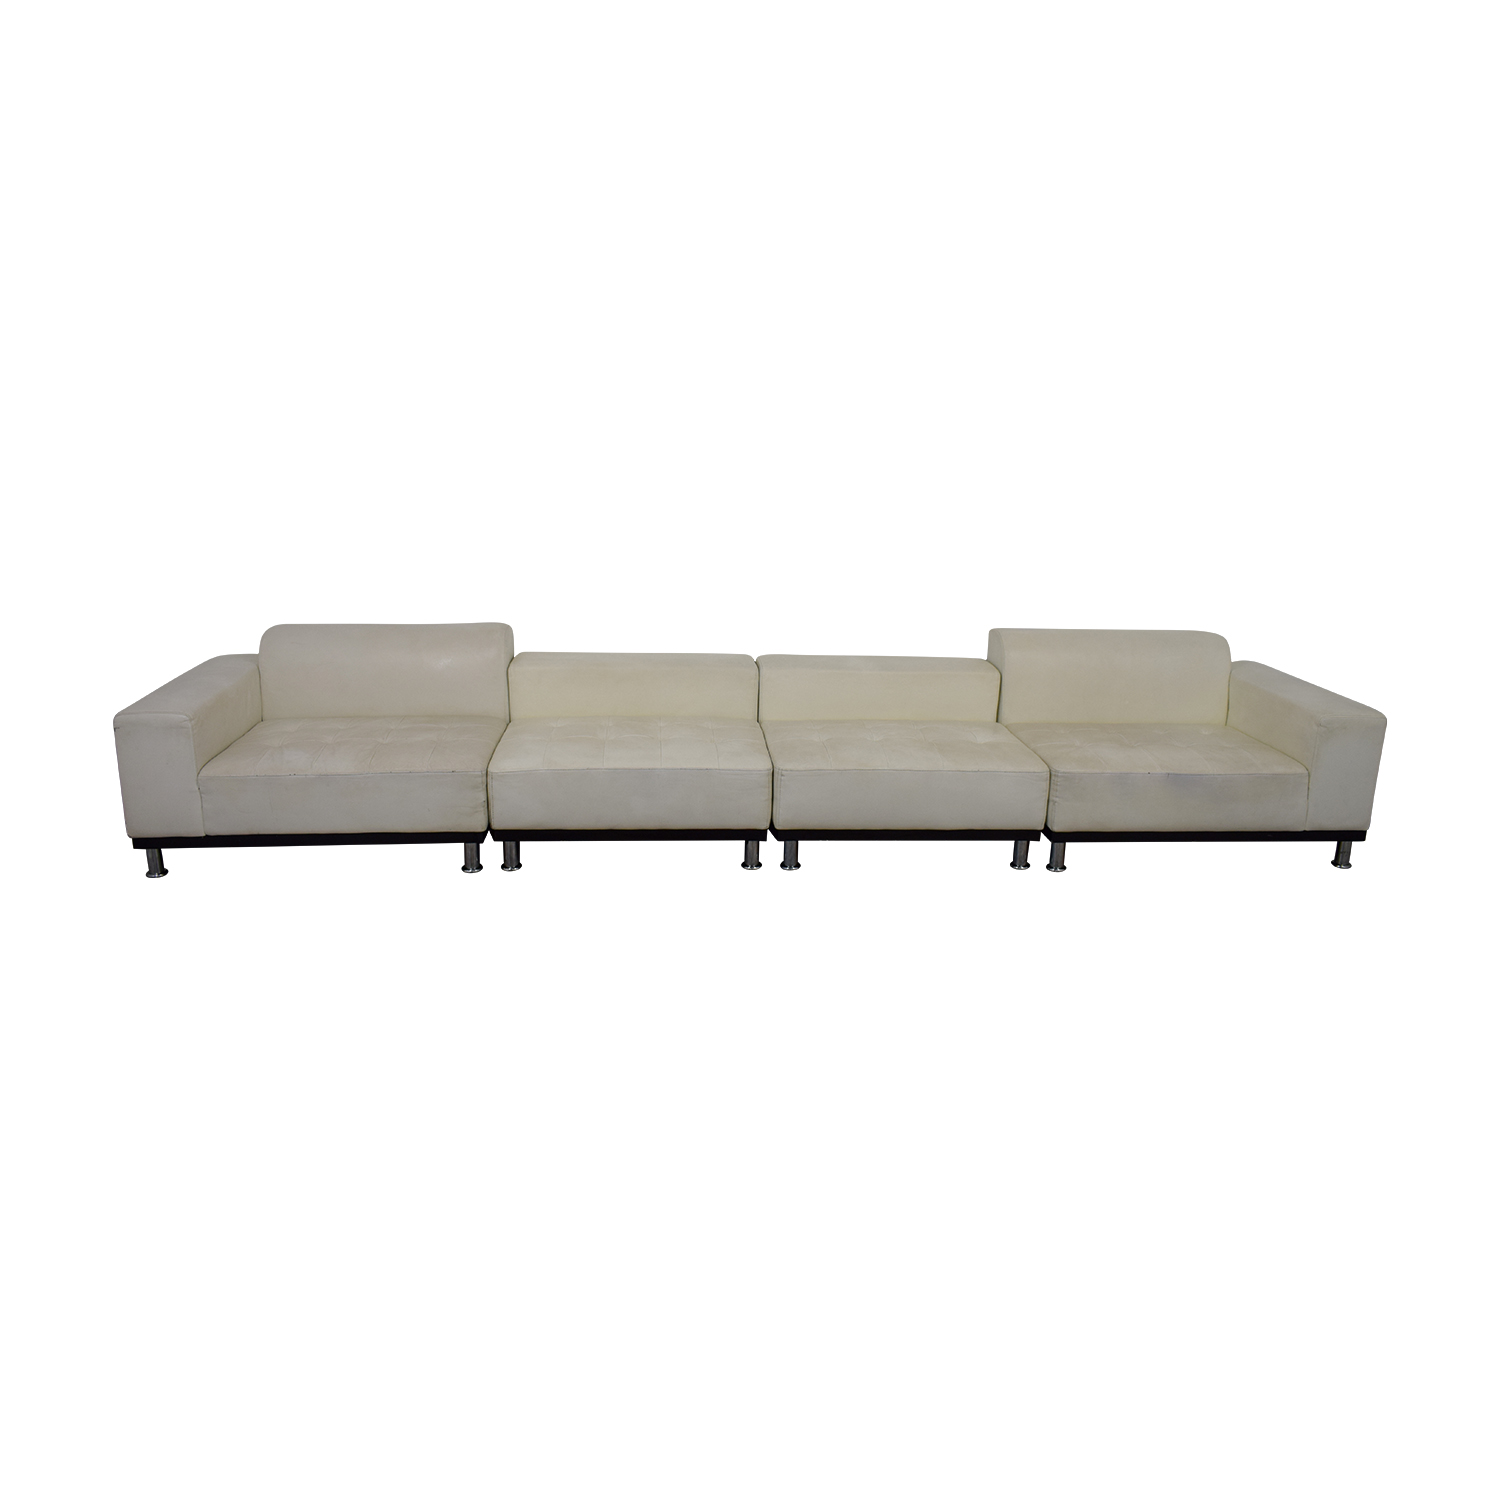 UrbanMod UrbanMod Phantom White Leather Sectional discount